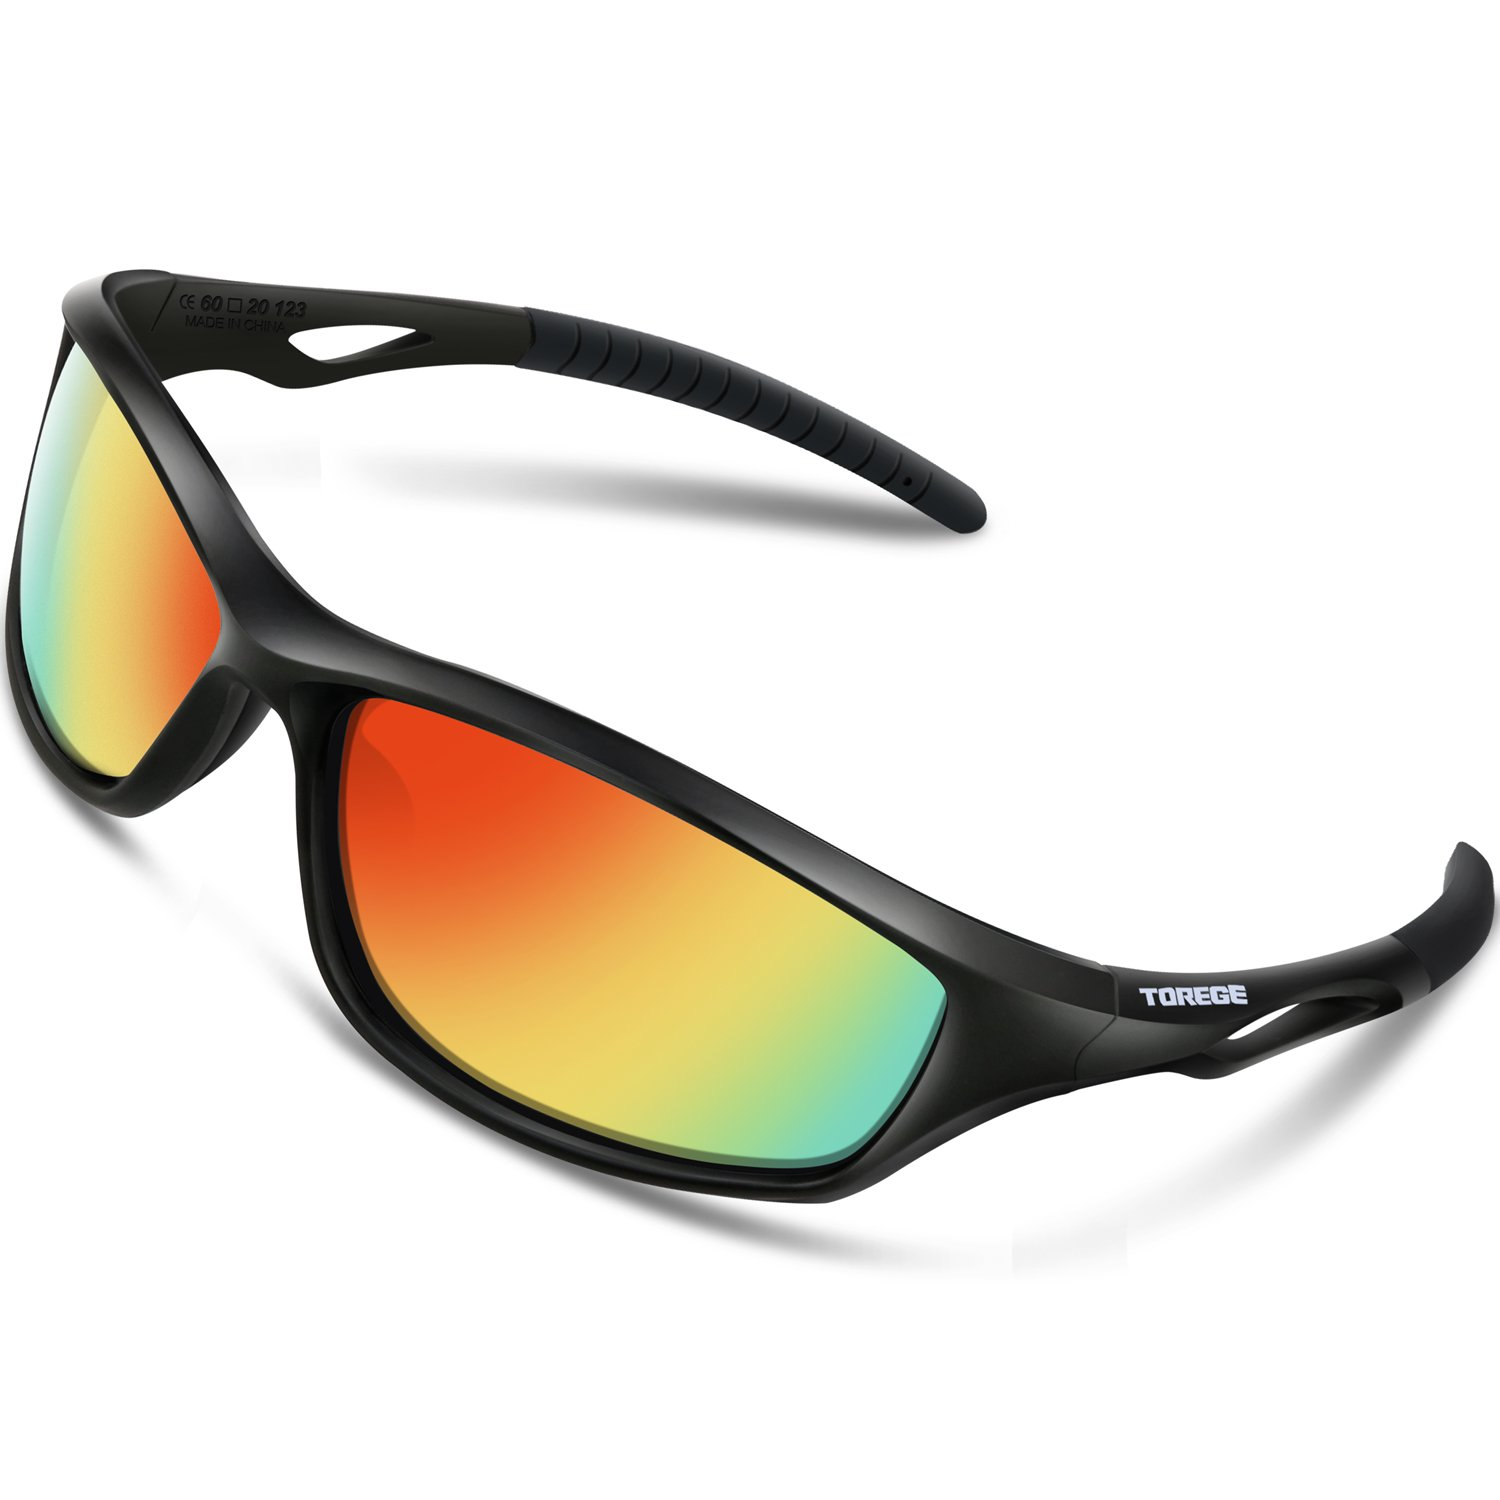 6c35b5e52c09 Amazon.com: TOREGE Polarized Sports Sunglasses for Men Women for Cycling  Running Fishing Golf TR90 Unbreakable Frame TR010-1 (Black  Frame&Balck&Red): Sports ...